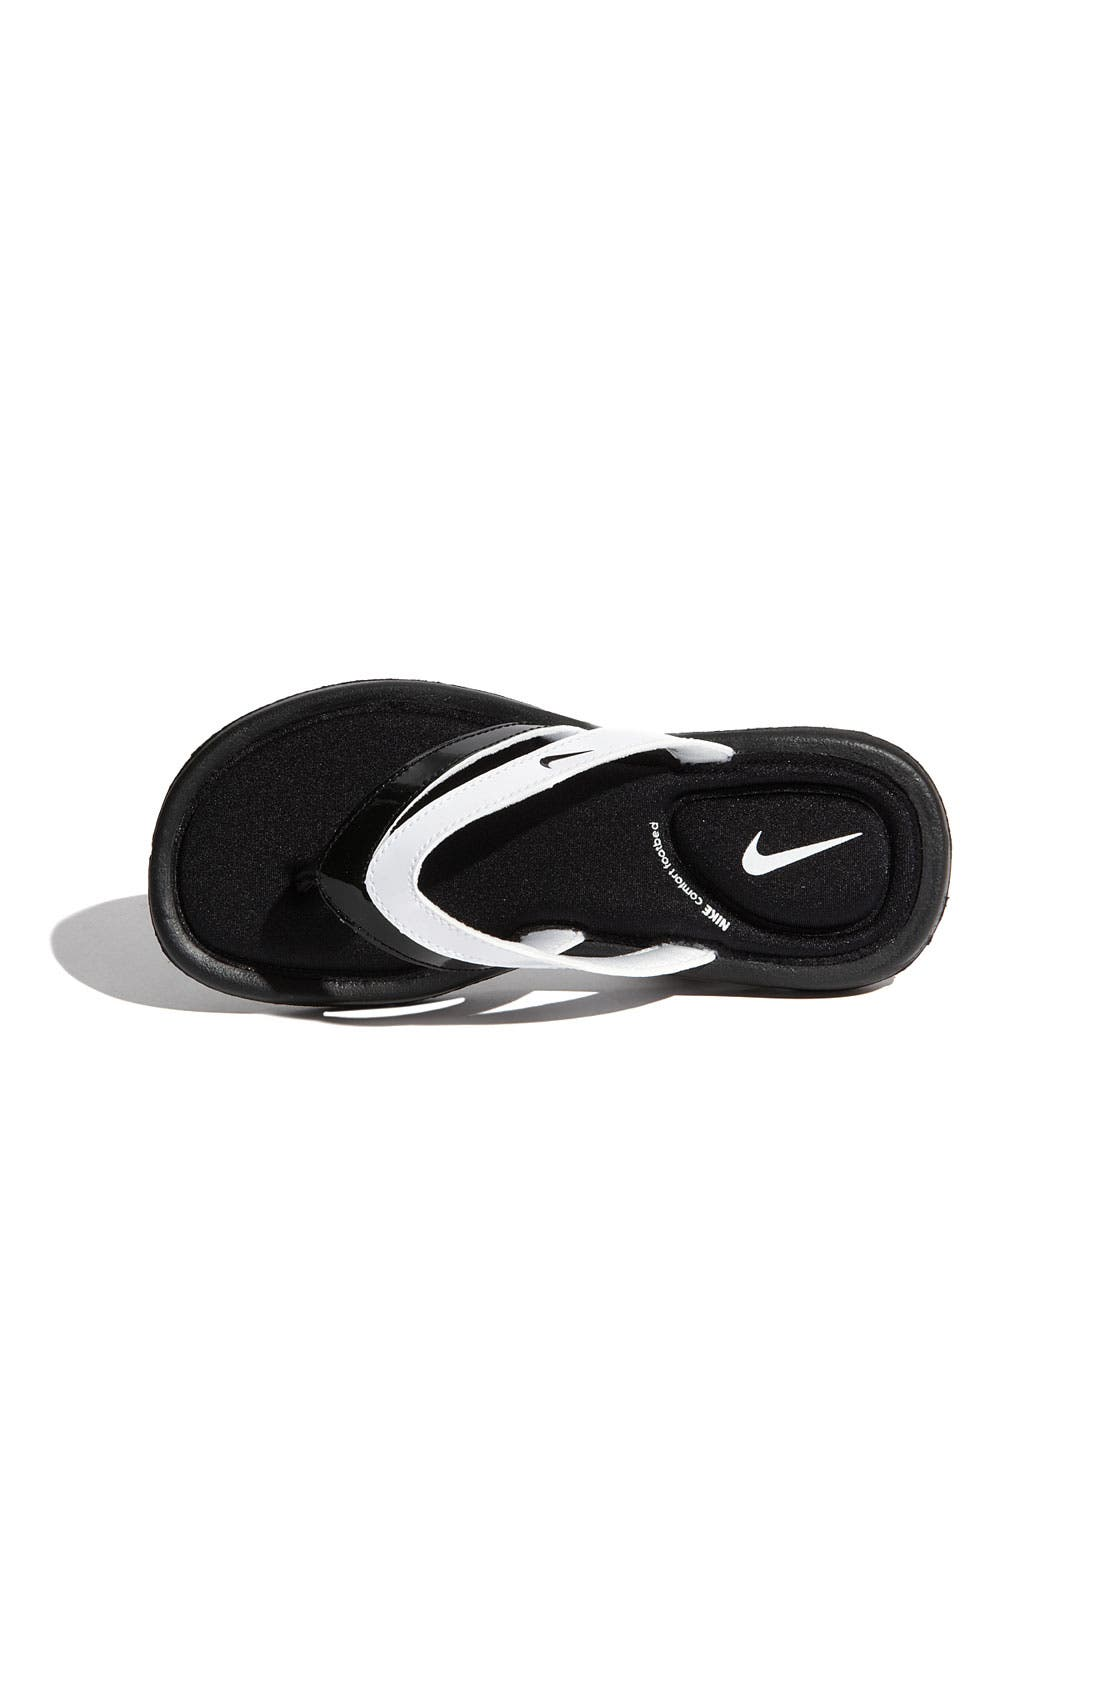 Alternate Image 3  - Nike 'Comfort' Thong Sandal (Toddler, Little Kid & Big Kid)